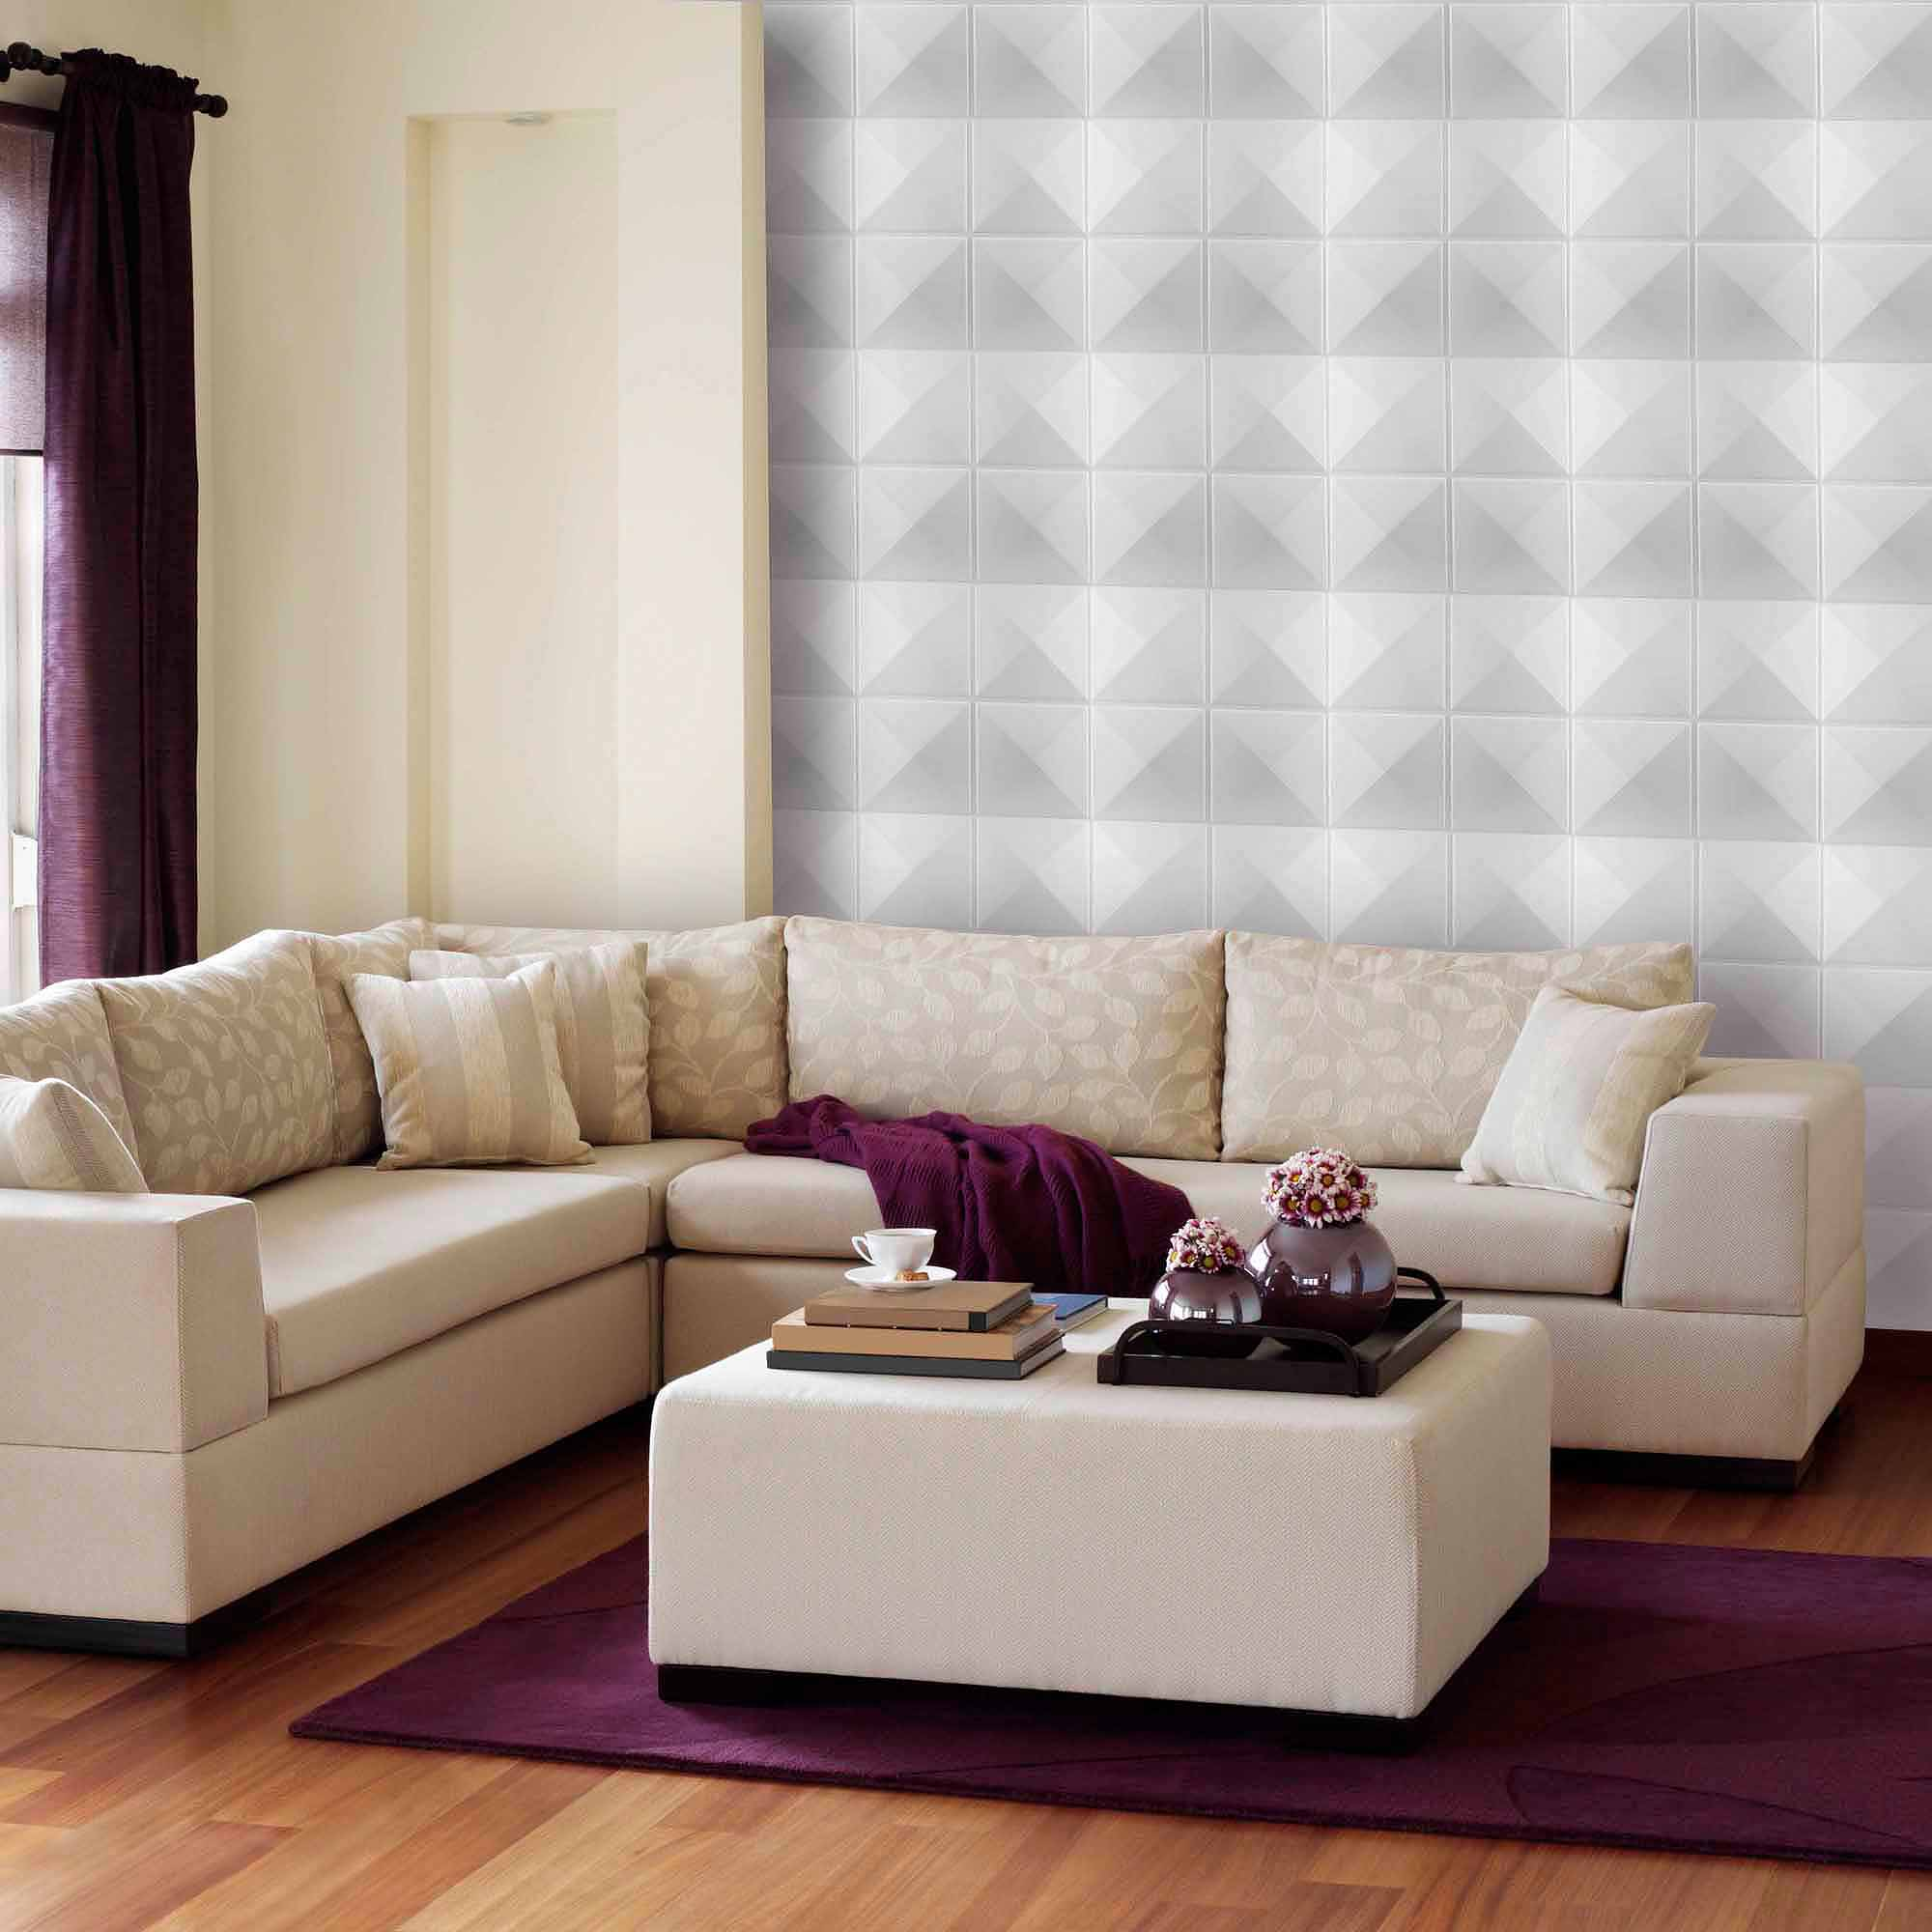 Donny Osmond Home 3D Self Adhesive Wall Tiles, Star - Walmart.com